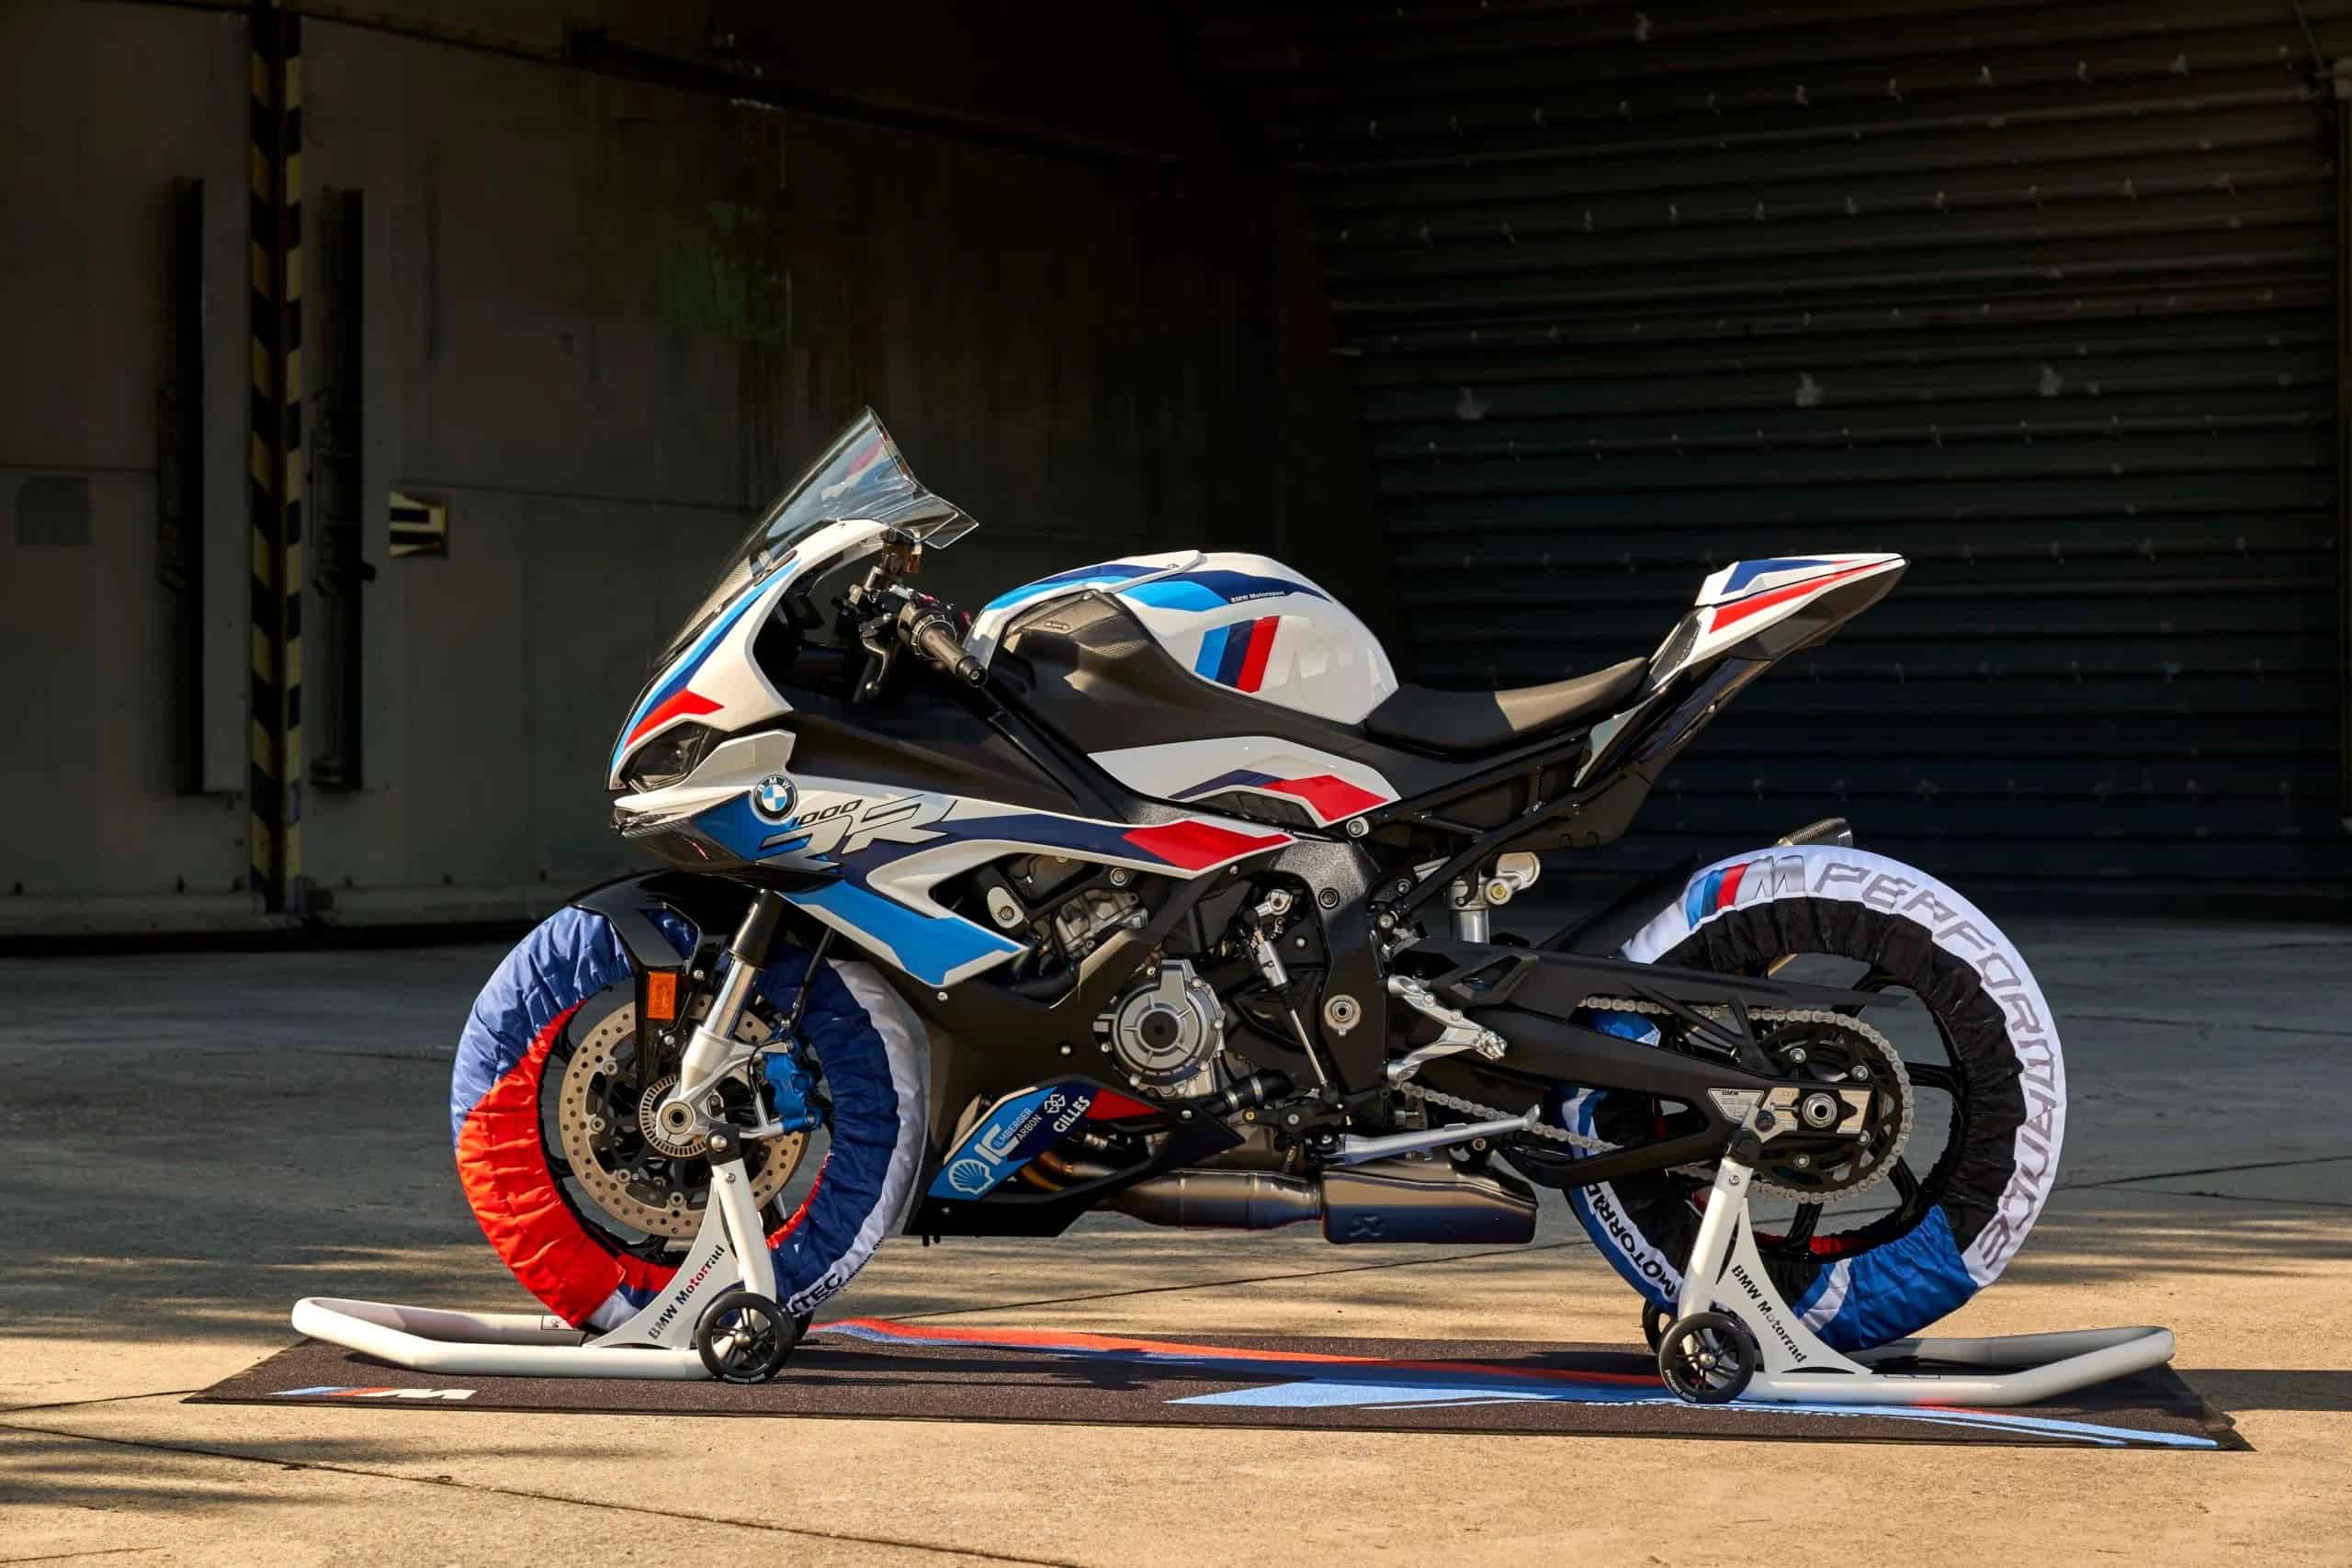 BMW M RR Side View with Tire Warmers